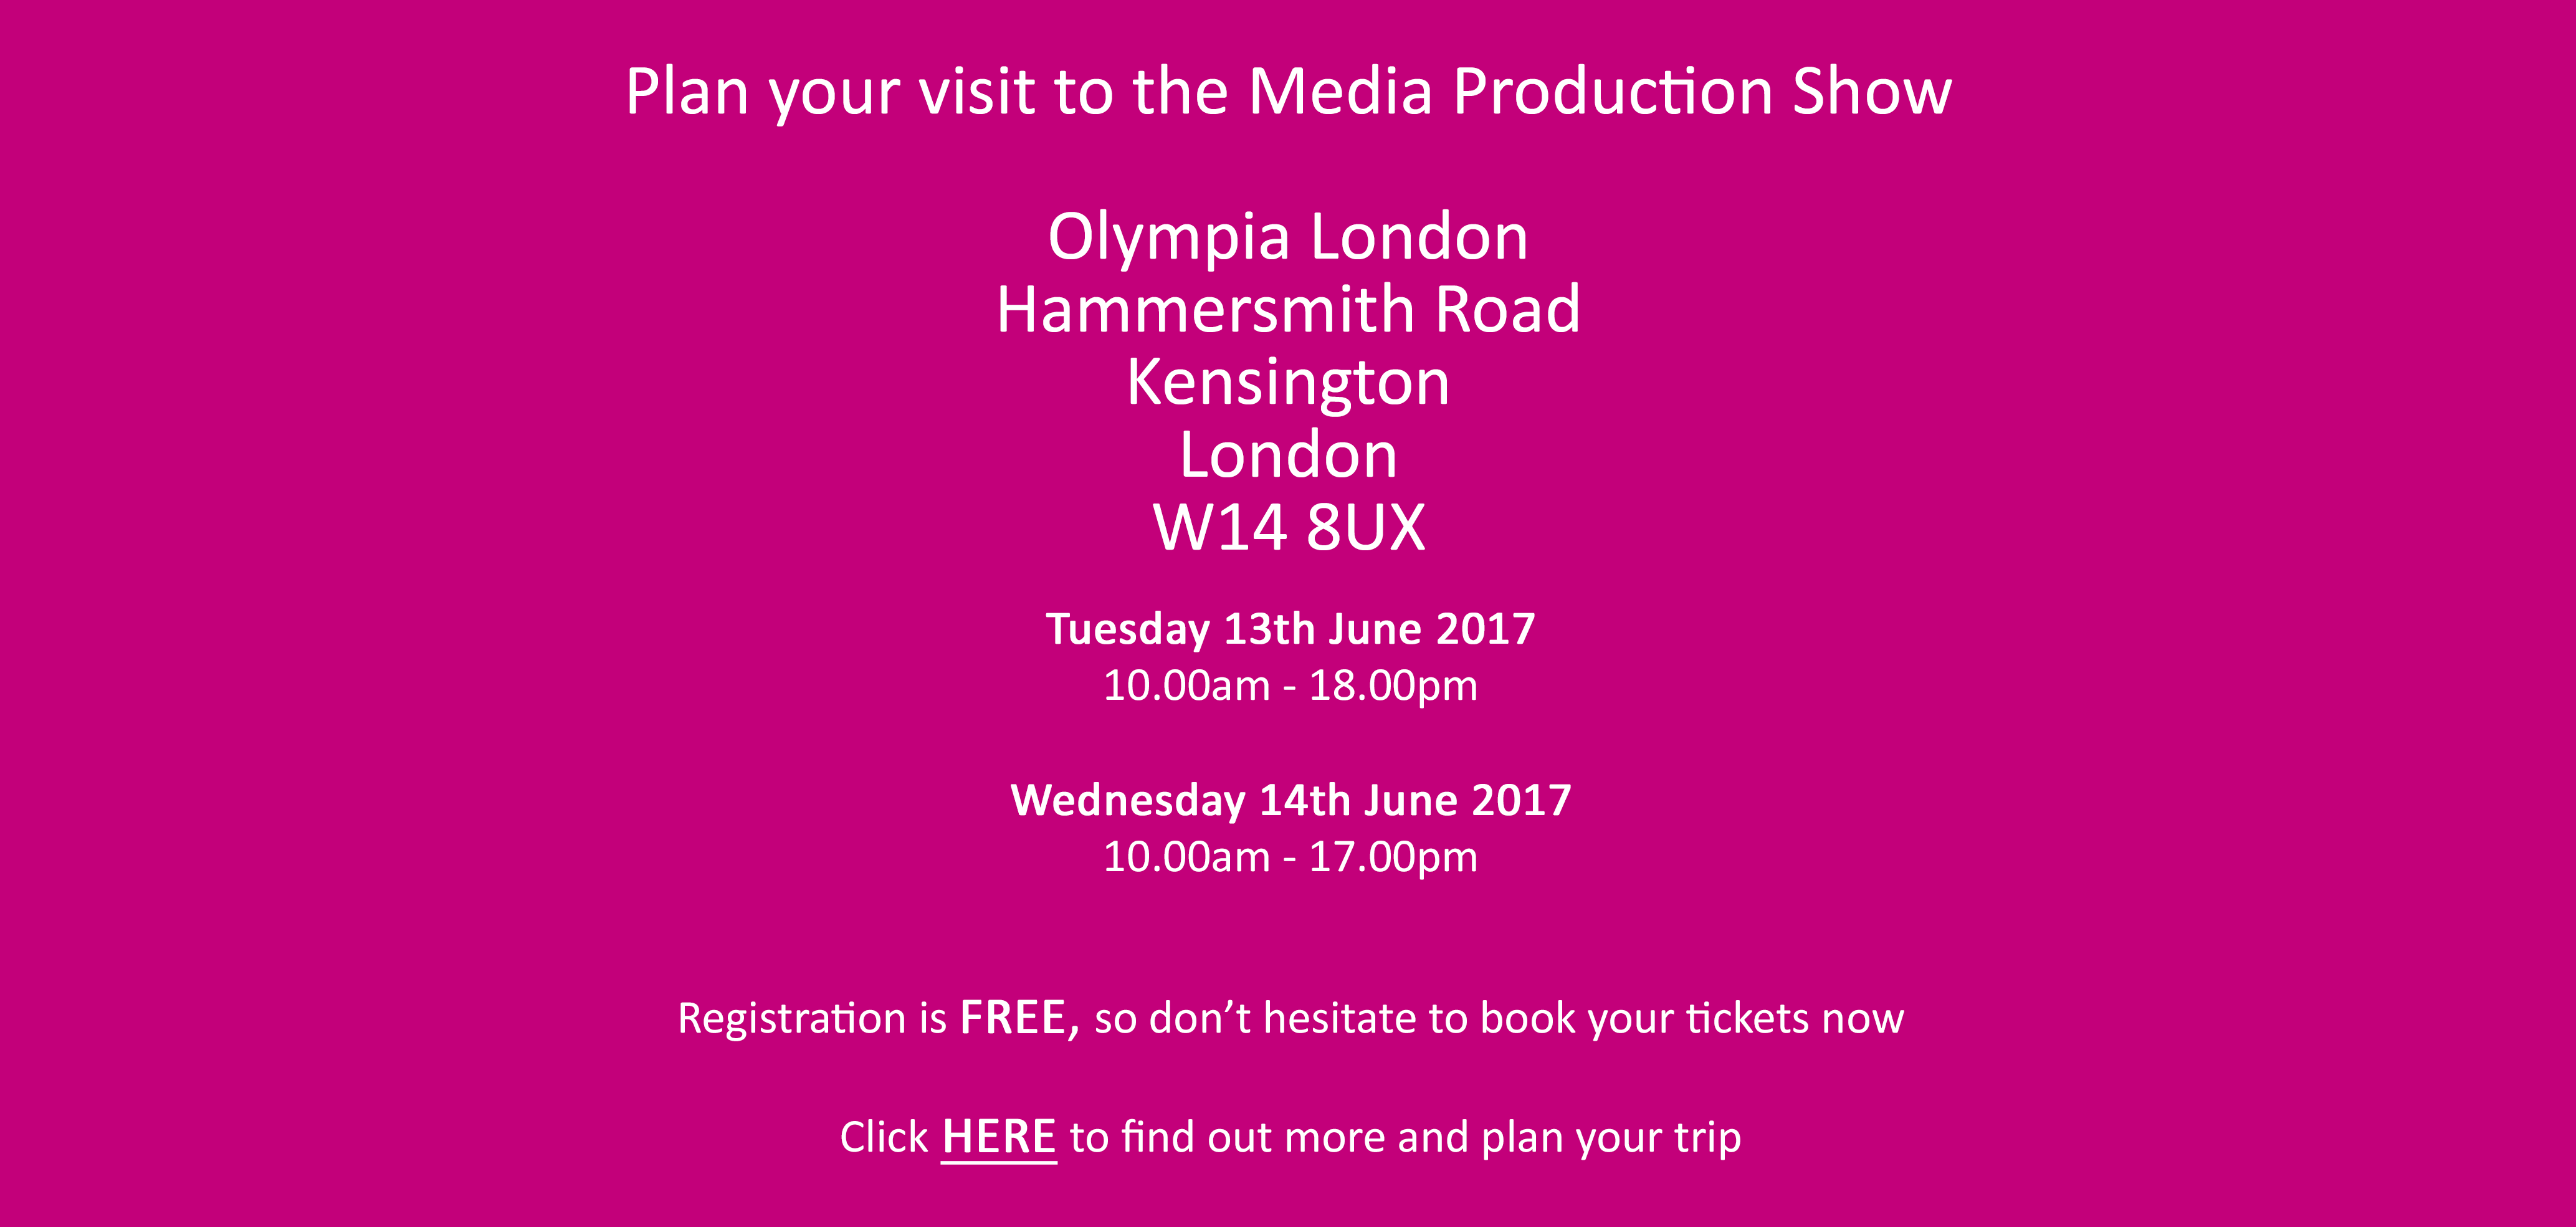 Plan Your Visit To The Media Production Show 2017